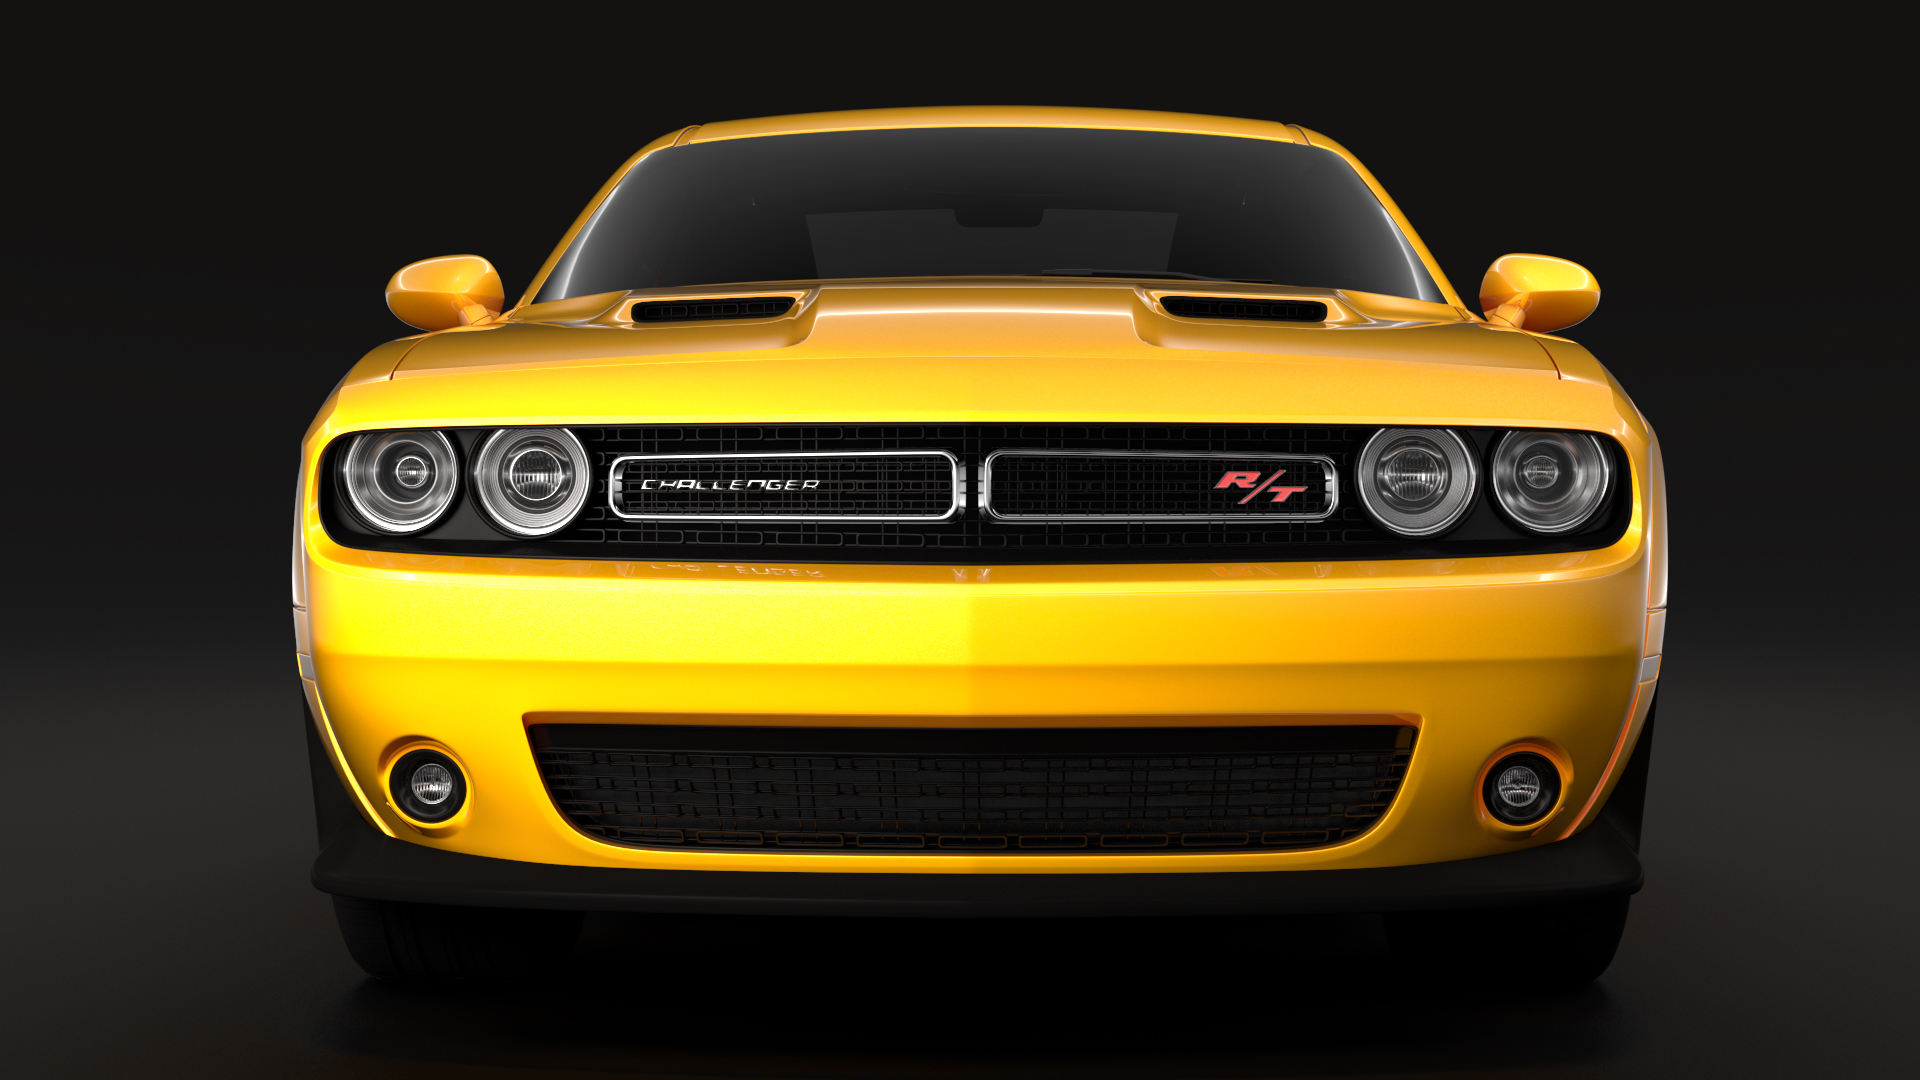 dodge challenger rt scat pack widebody 2017 3d model flatpyramid. Black Bedroom Furniture Sets. Home Design Ideas